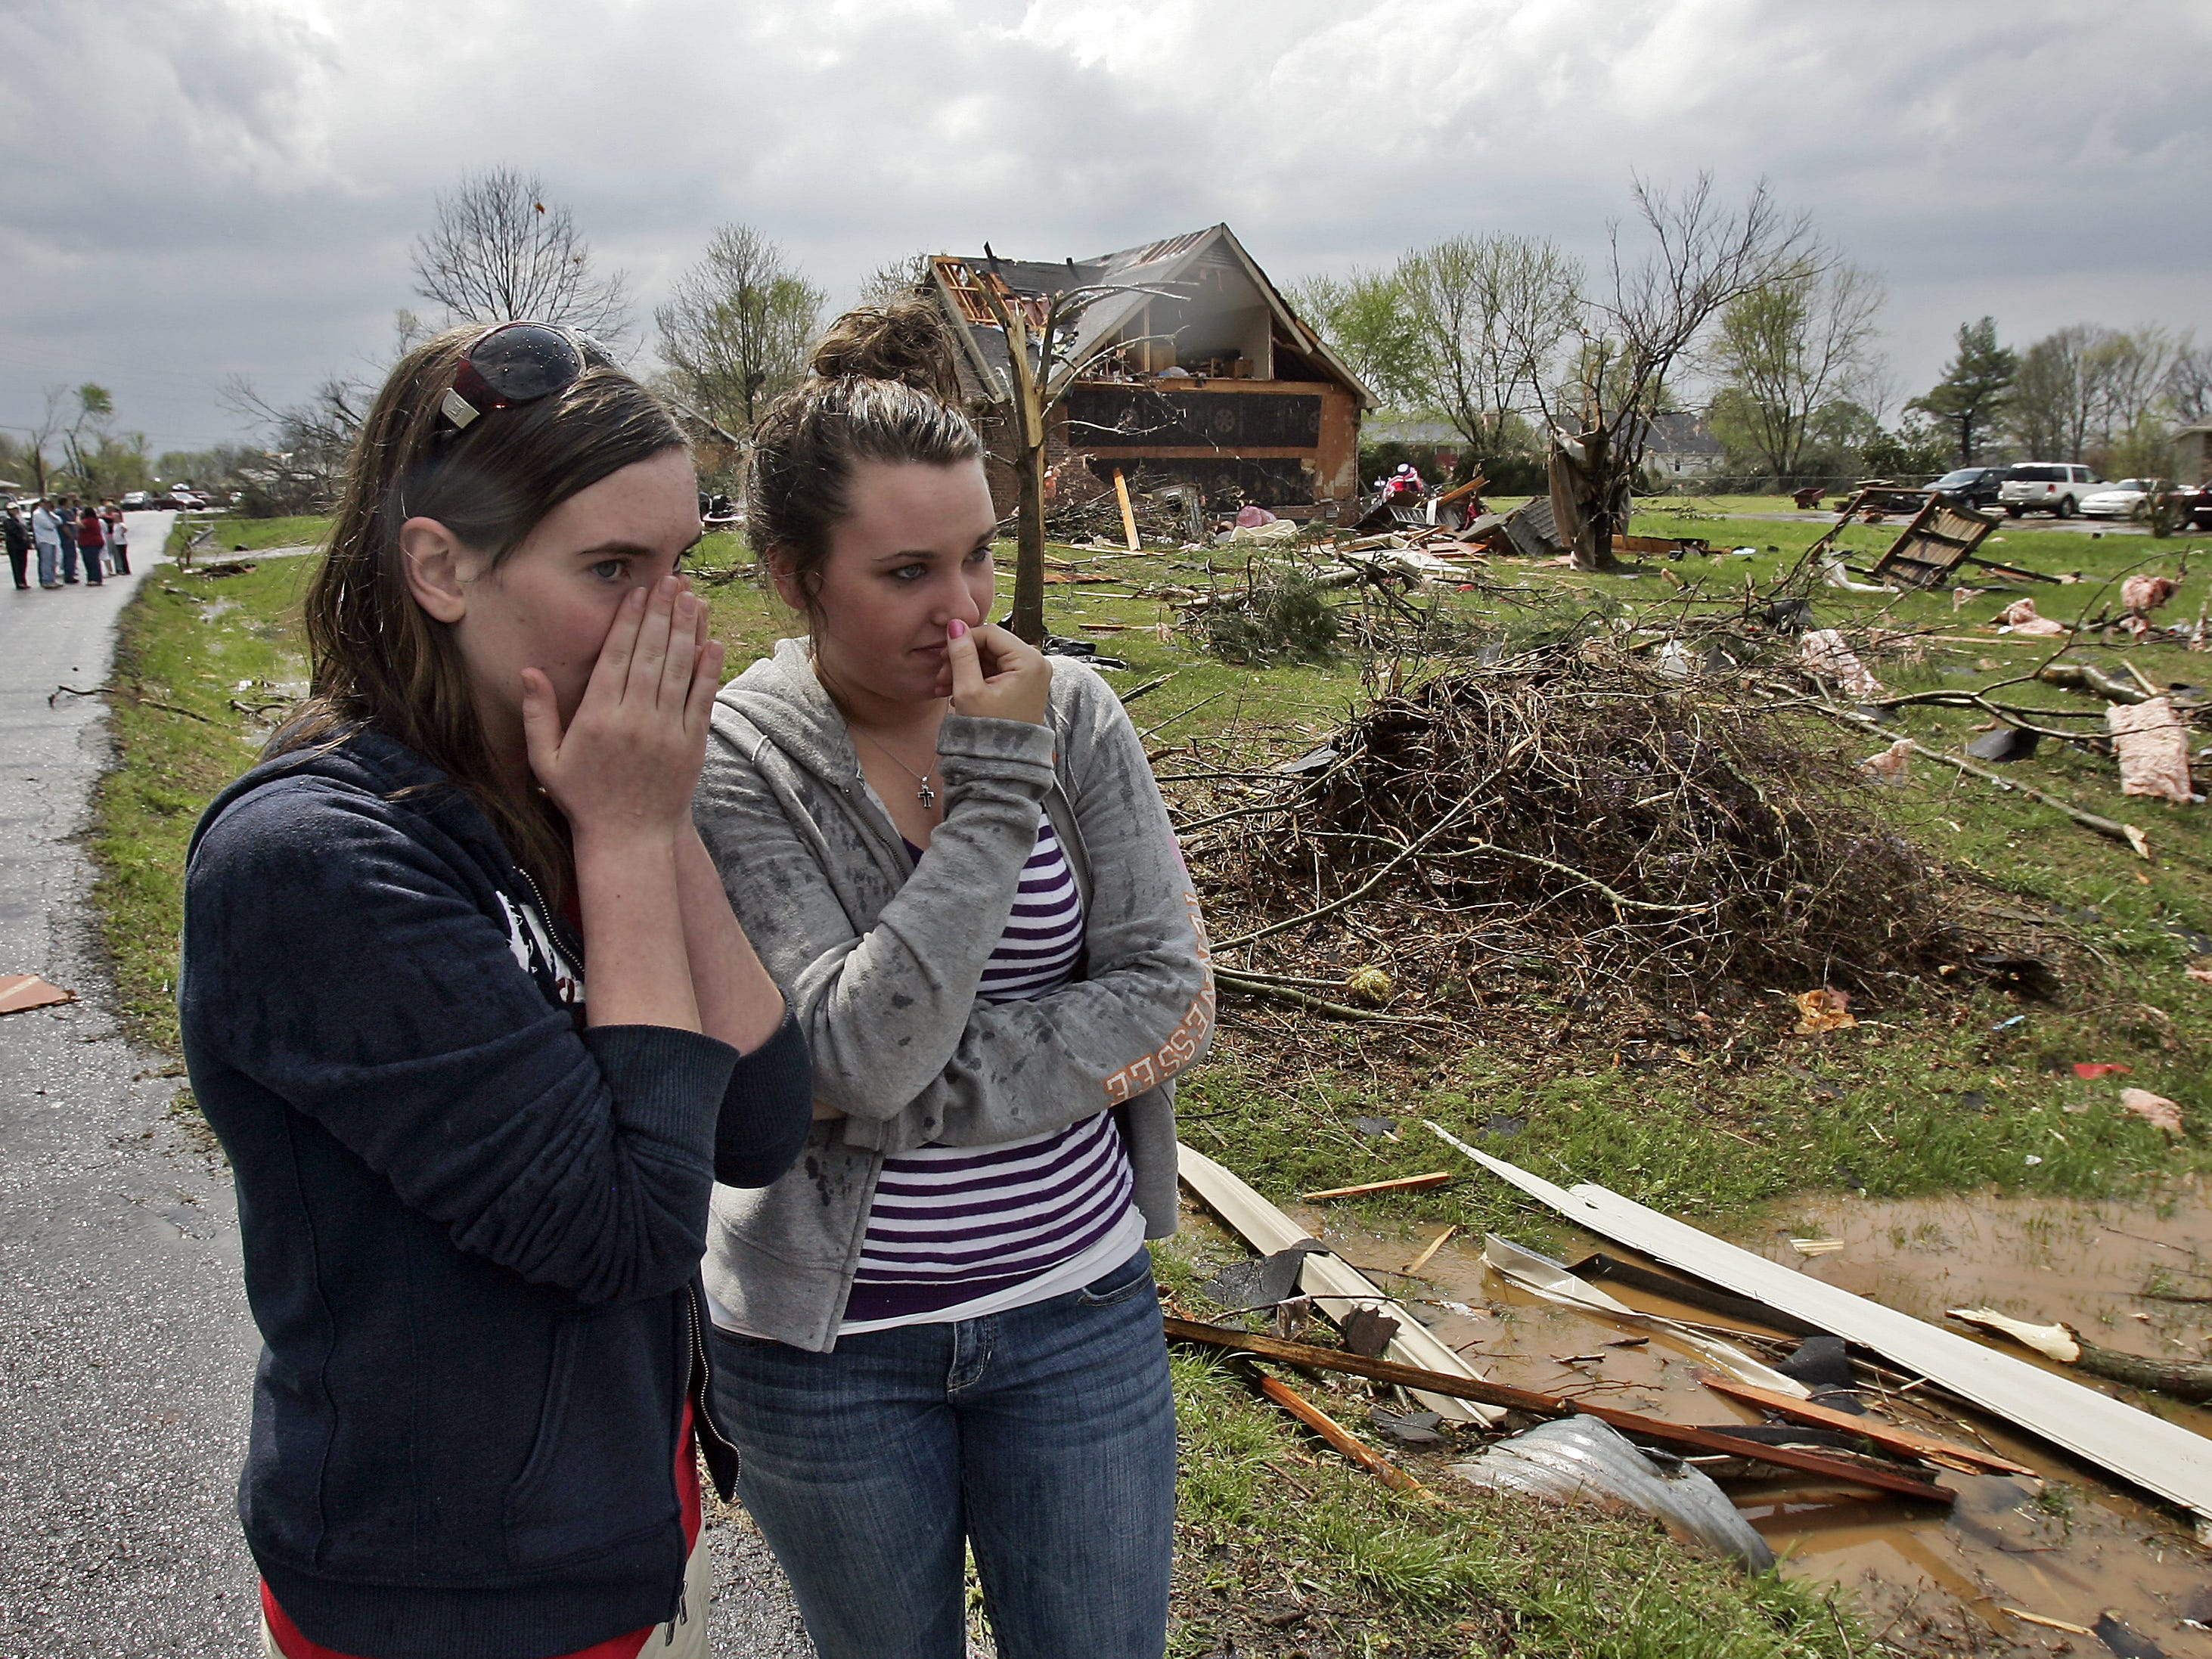 Karolyn Lane, 14, left, and her friend Leslie Hibdon react as they look at tornado damages in the Blackman community in Murfreesboro, Tenn., Friday, April 10, 2009. (JAE S. LEE / THE TENNESSEAN)